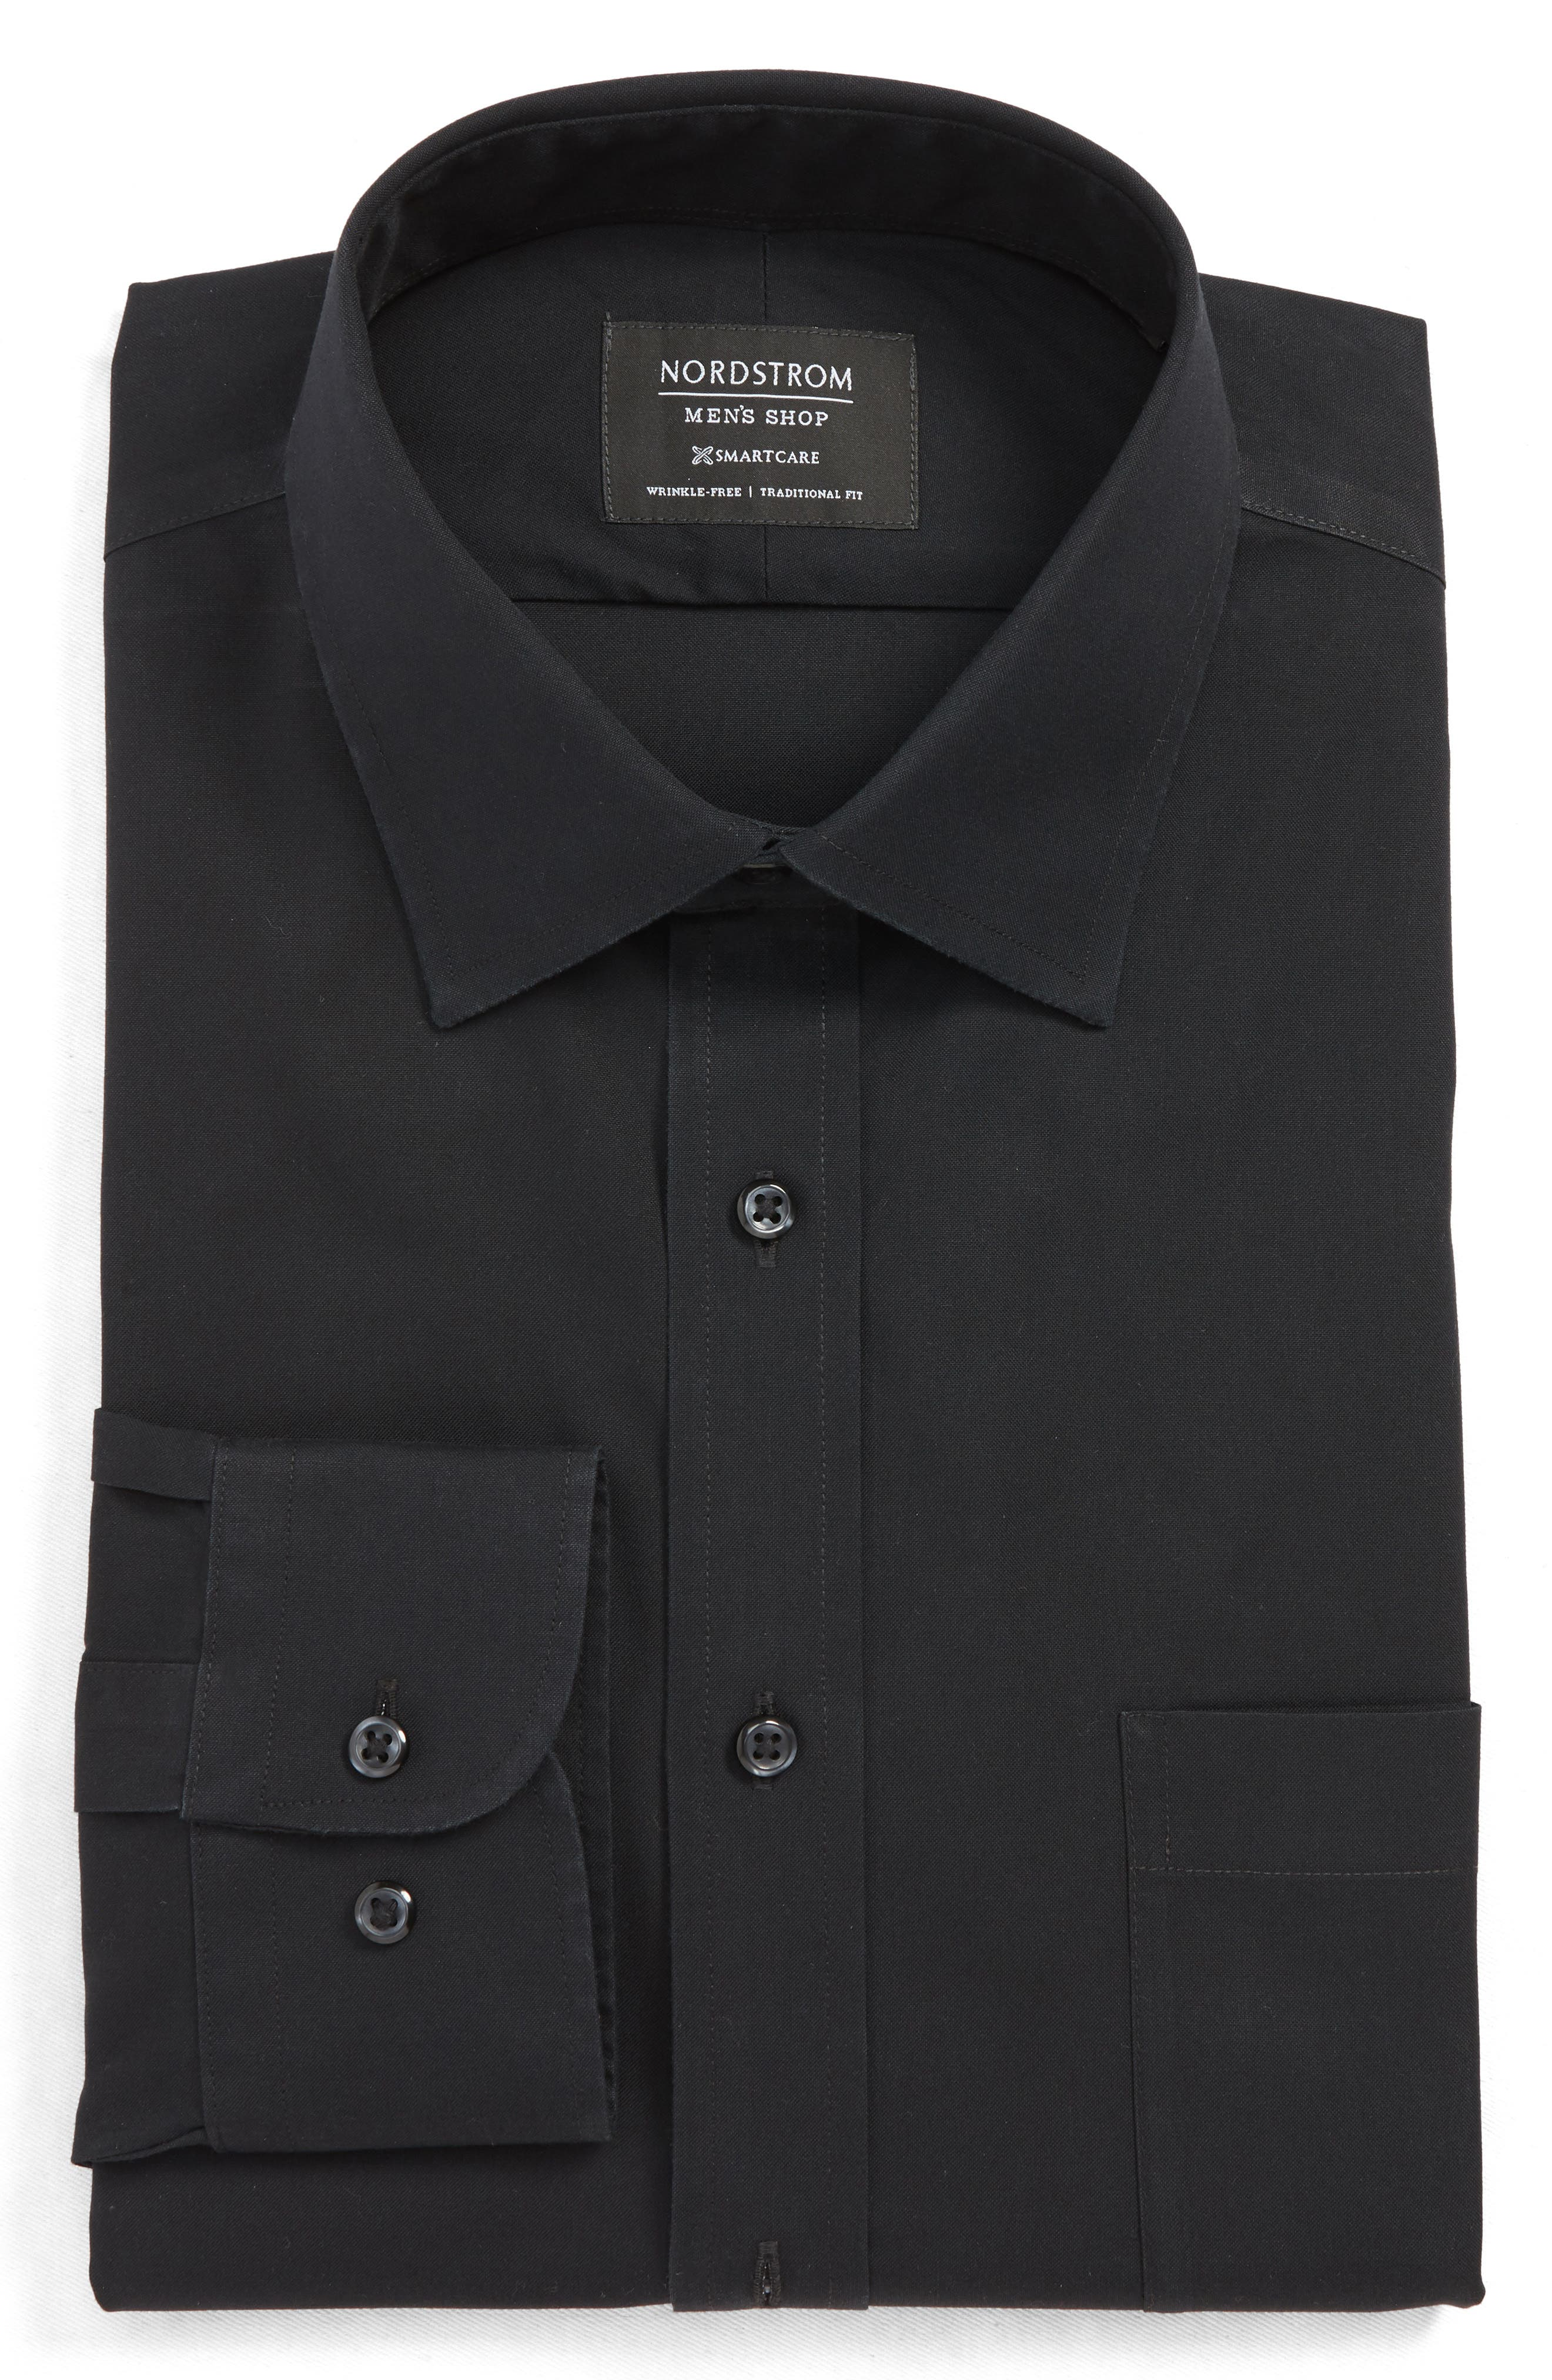 Nordstrom Shop Smartcare(TM) Traditional Fit Dress Shirt - Black